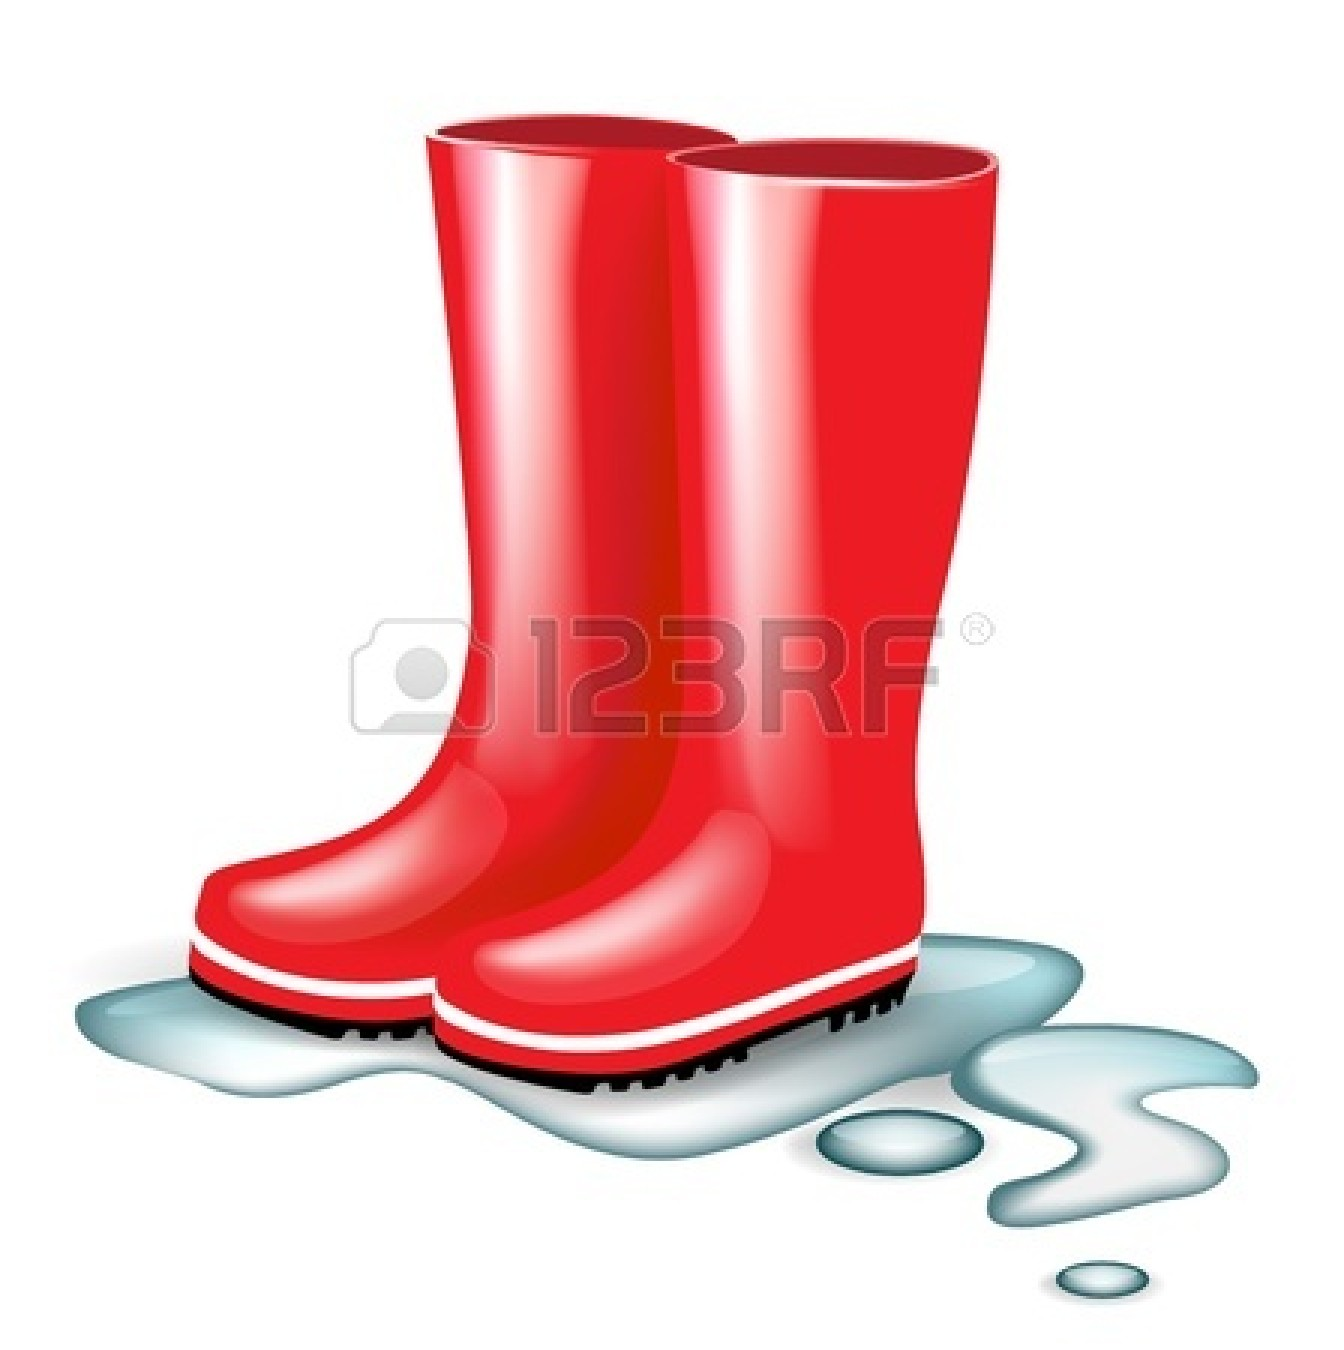 Rubber Boots Clipart.